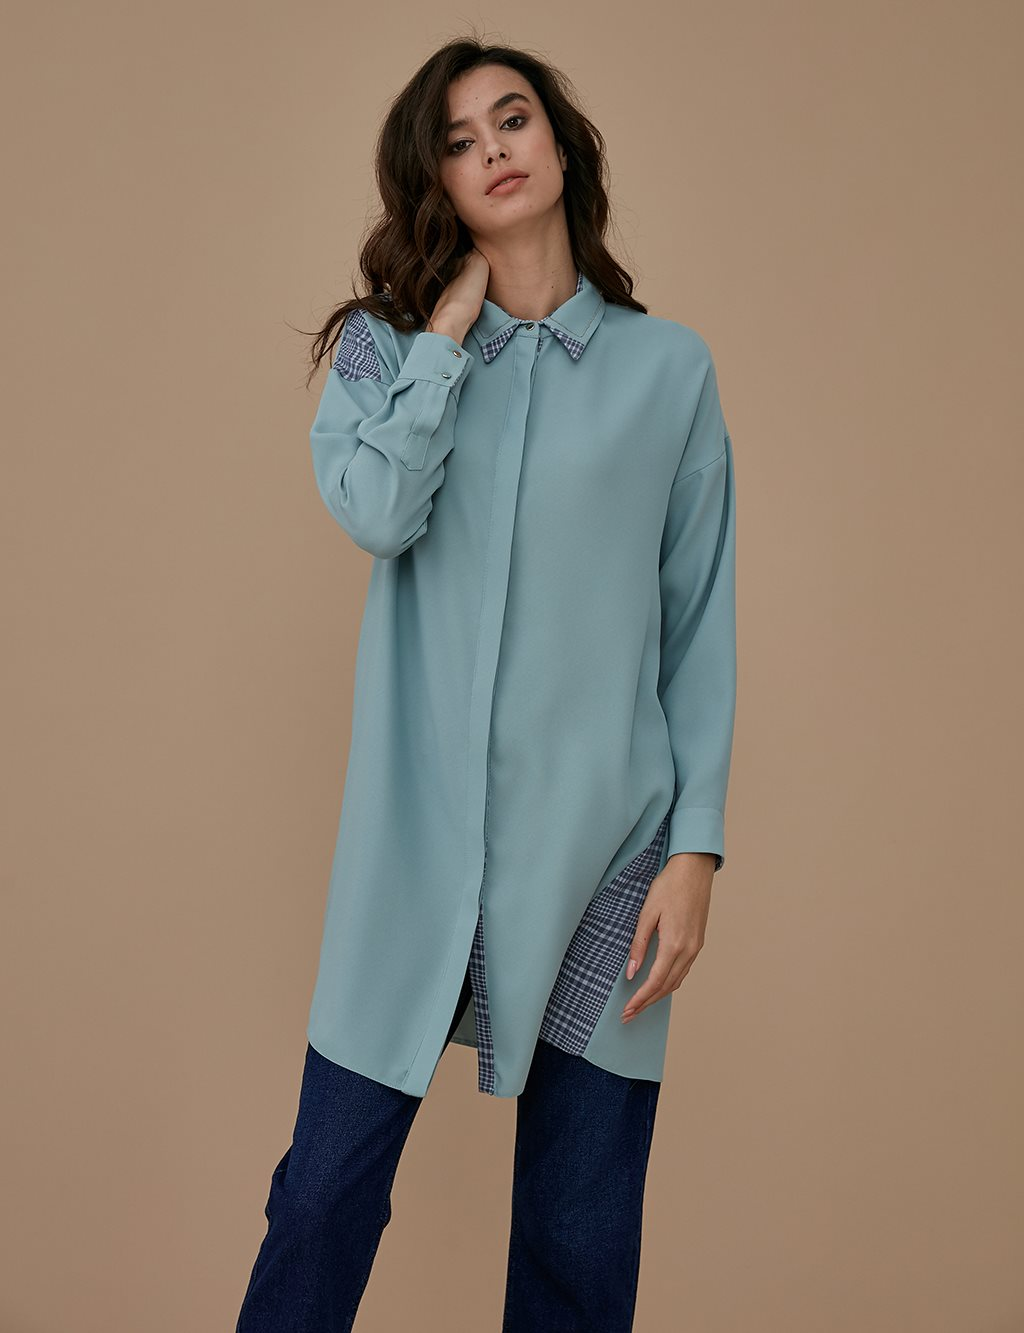 Collar Detailed Tunic A9 21130 Water Green